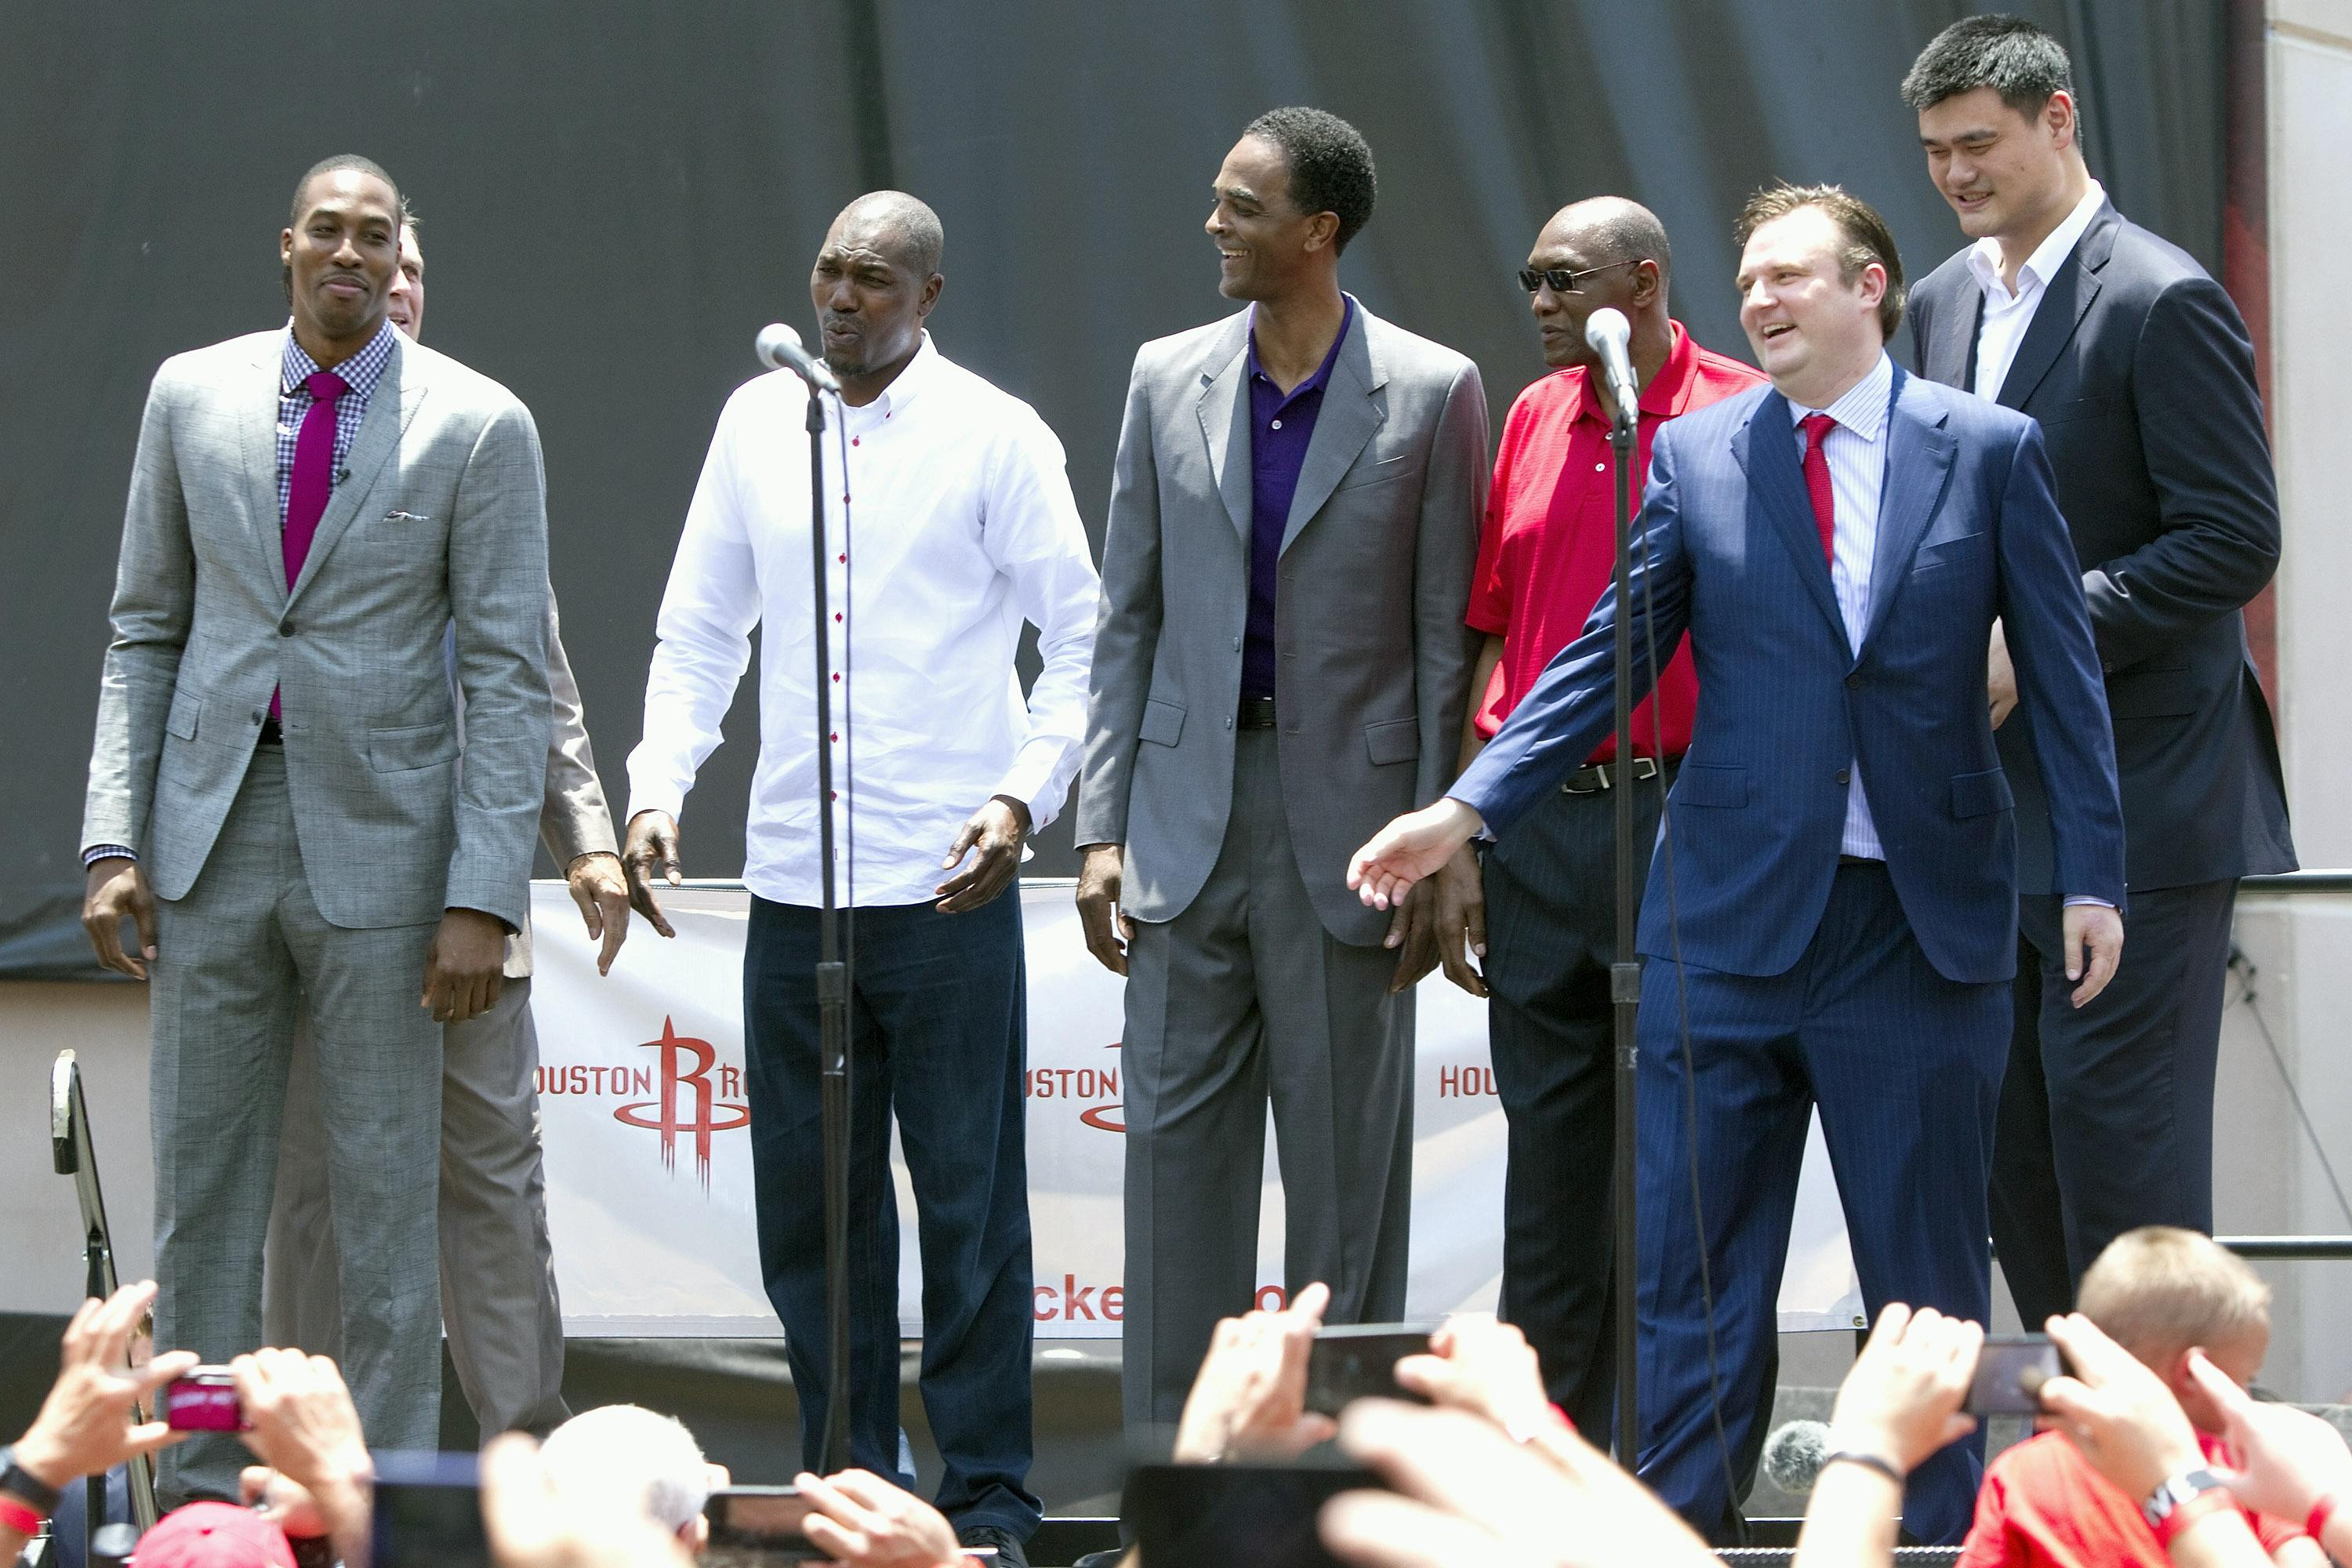 Hakeem Olajuwon, Ralph Sampson, Elvin Hayes, Yao Ming and Houston Rockets general manager Daryl Morey